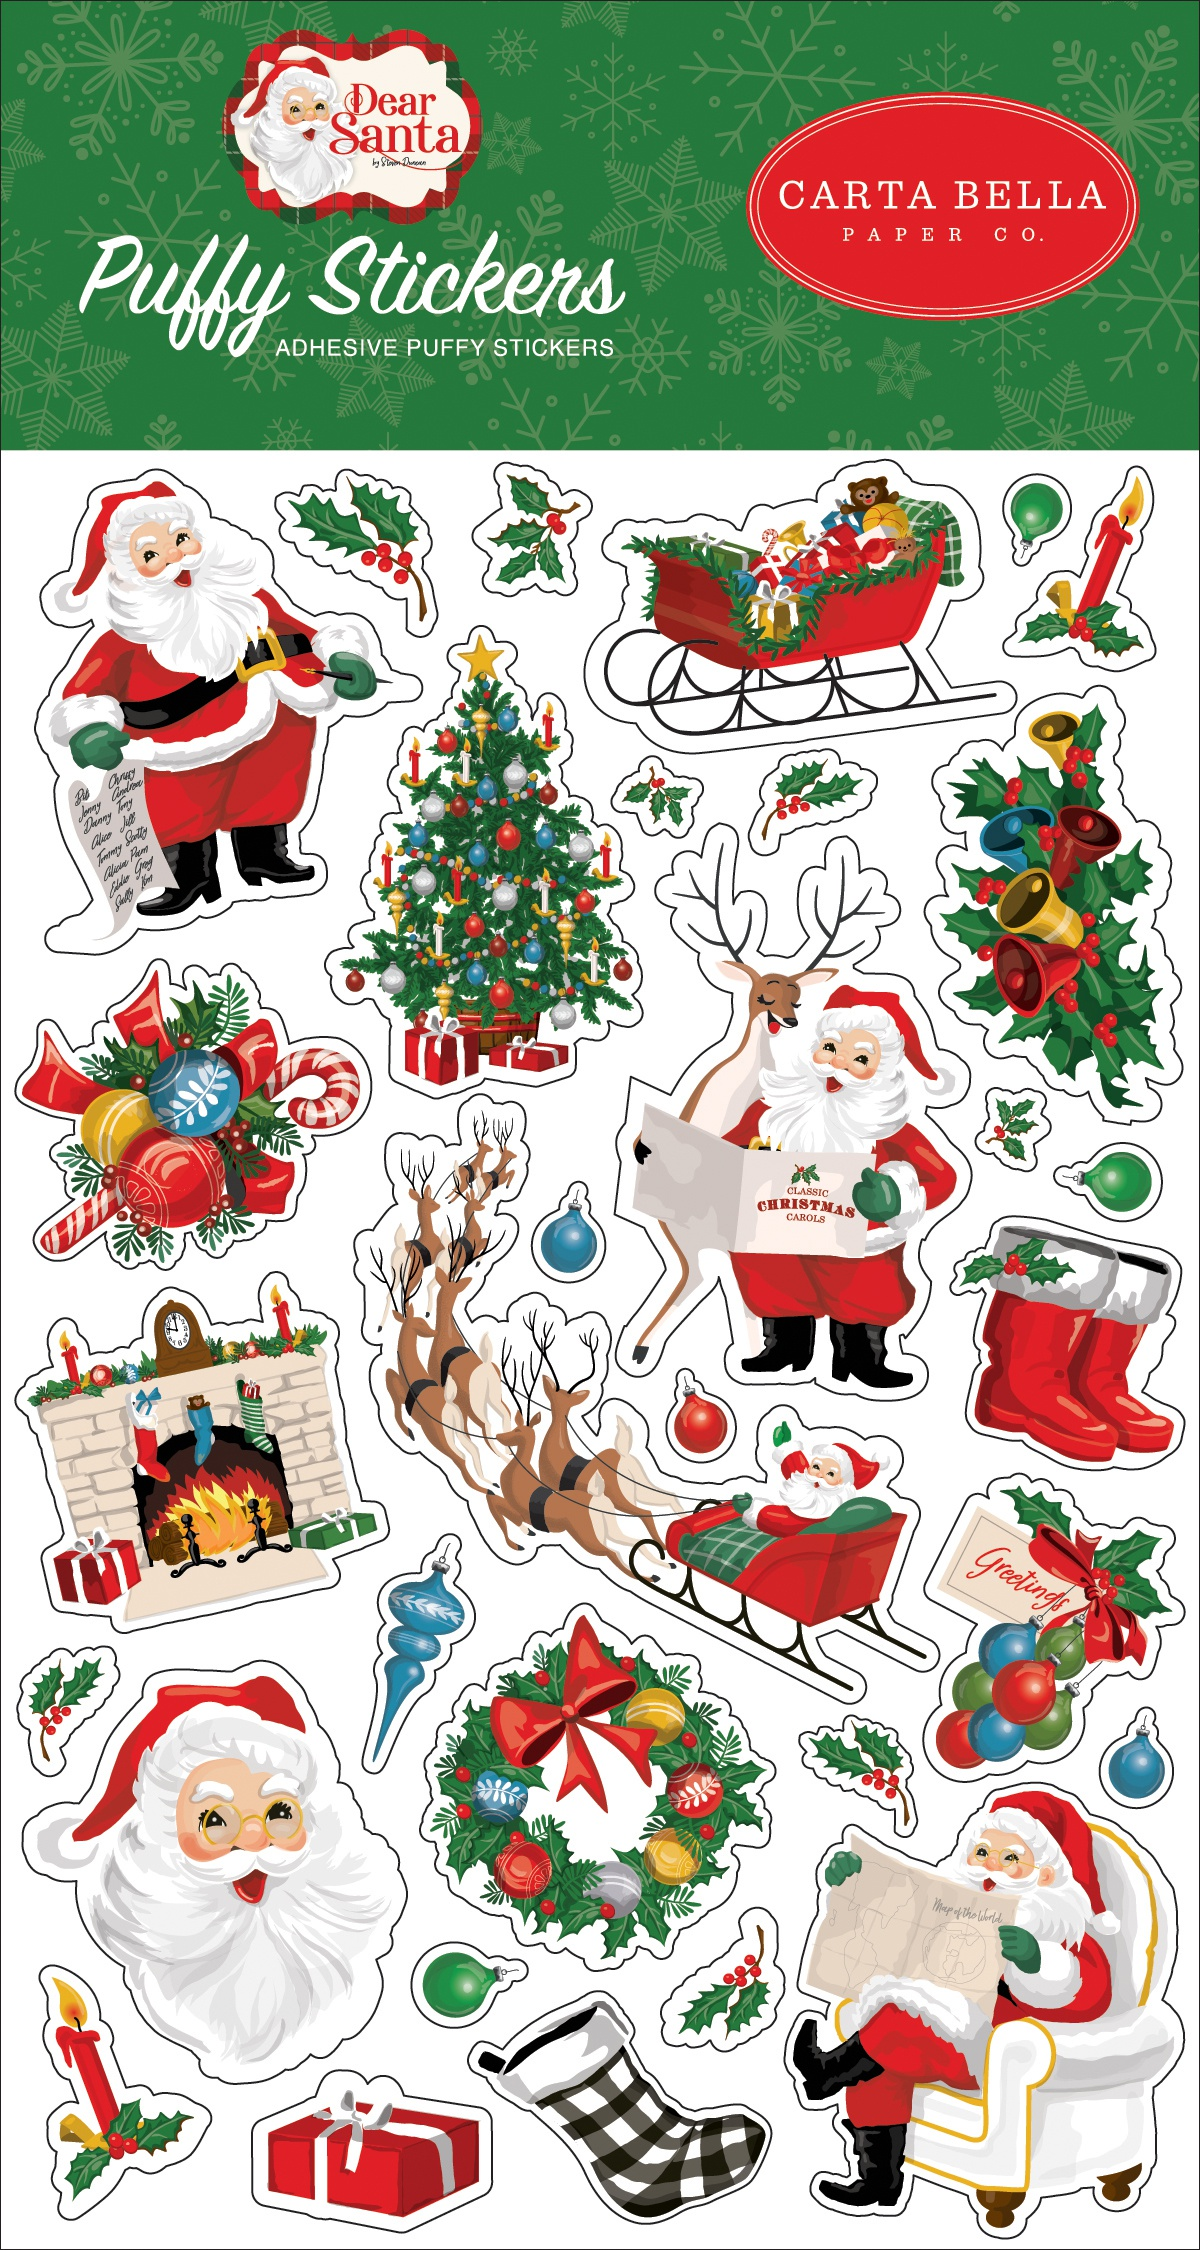 Dear Santa Puffy Stickers-